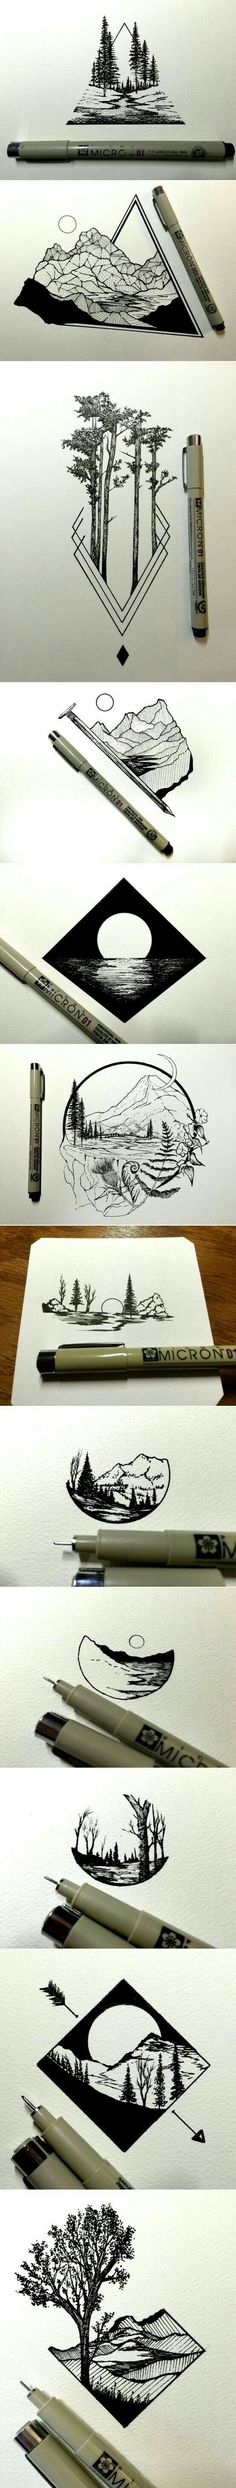 daily drawings by derek myers fubiz media a grouped images picture pin them all